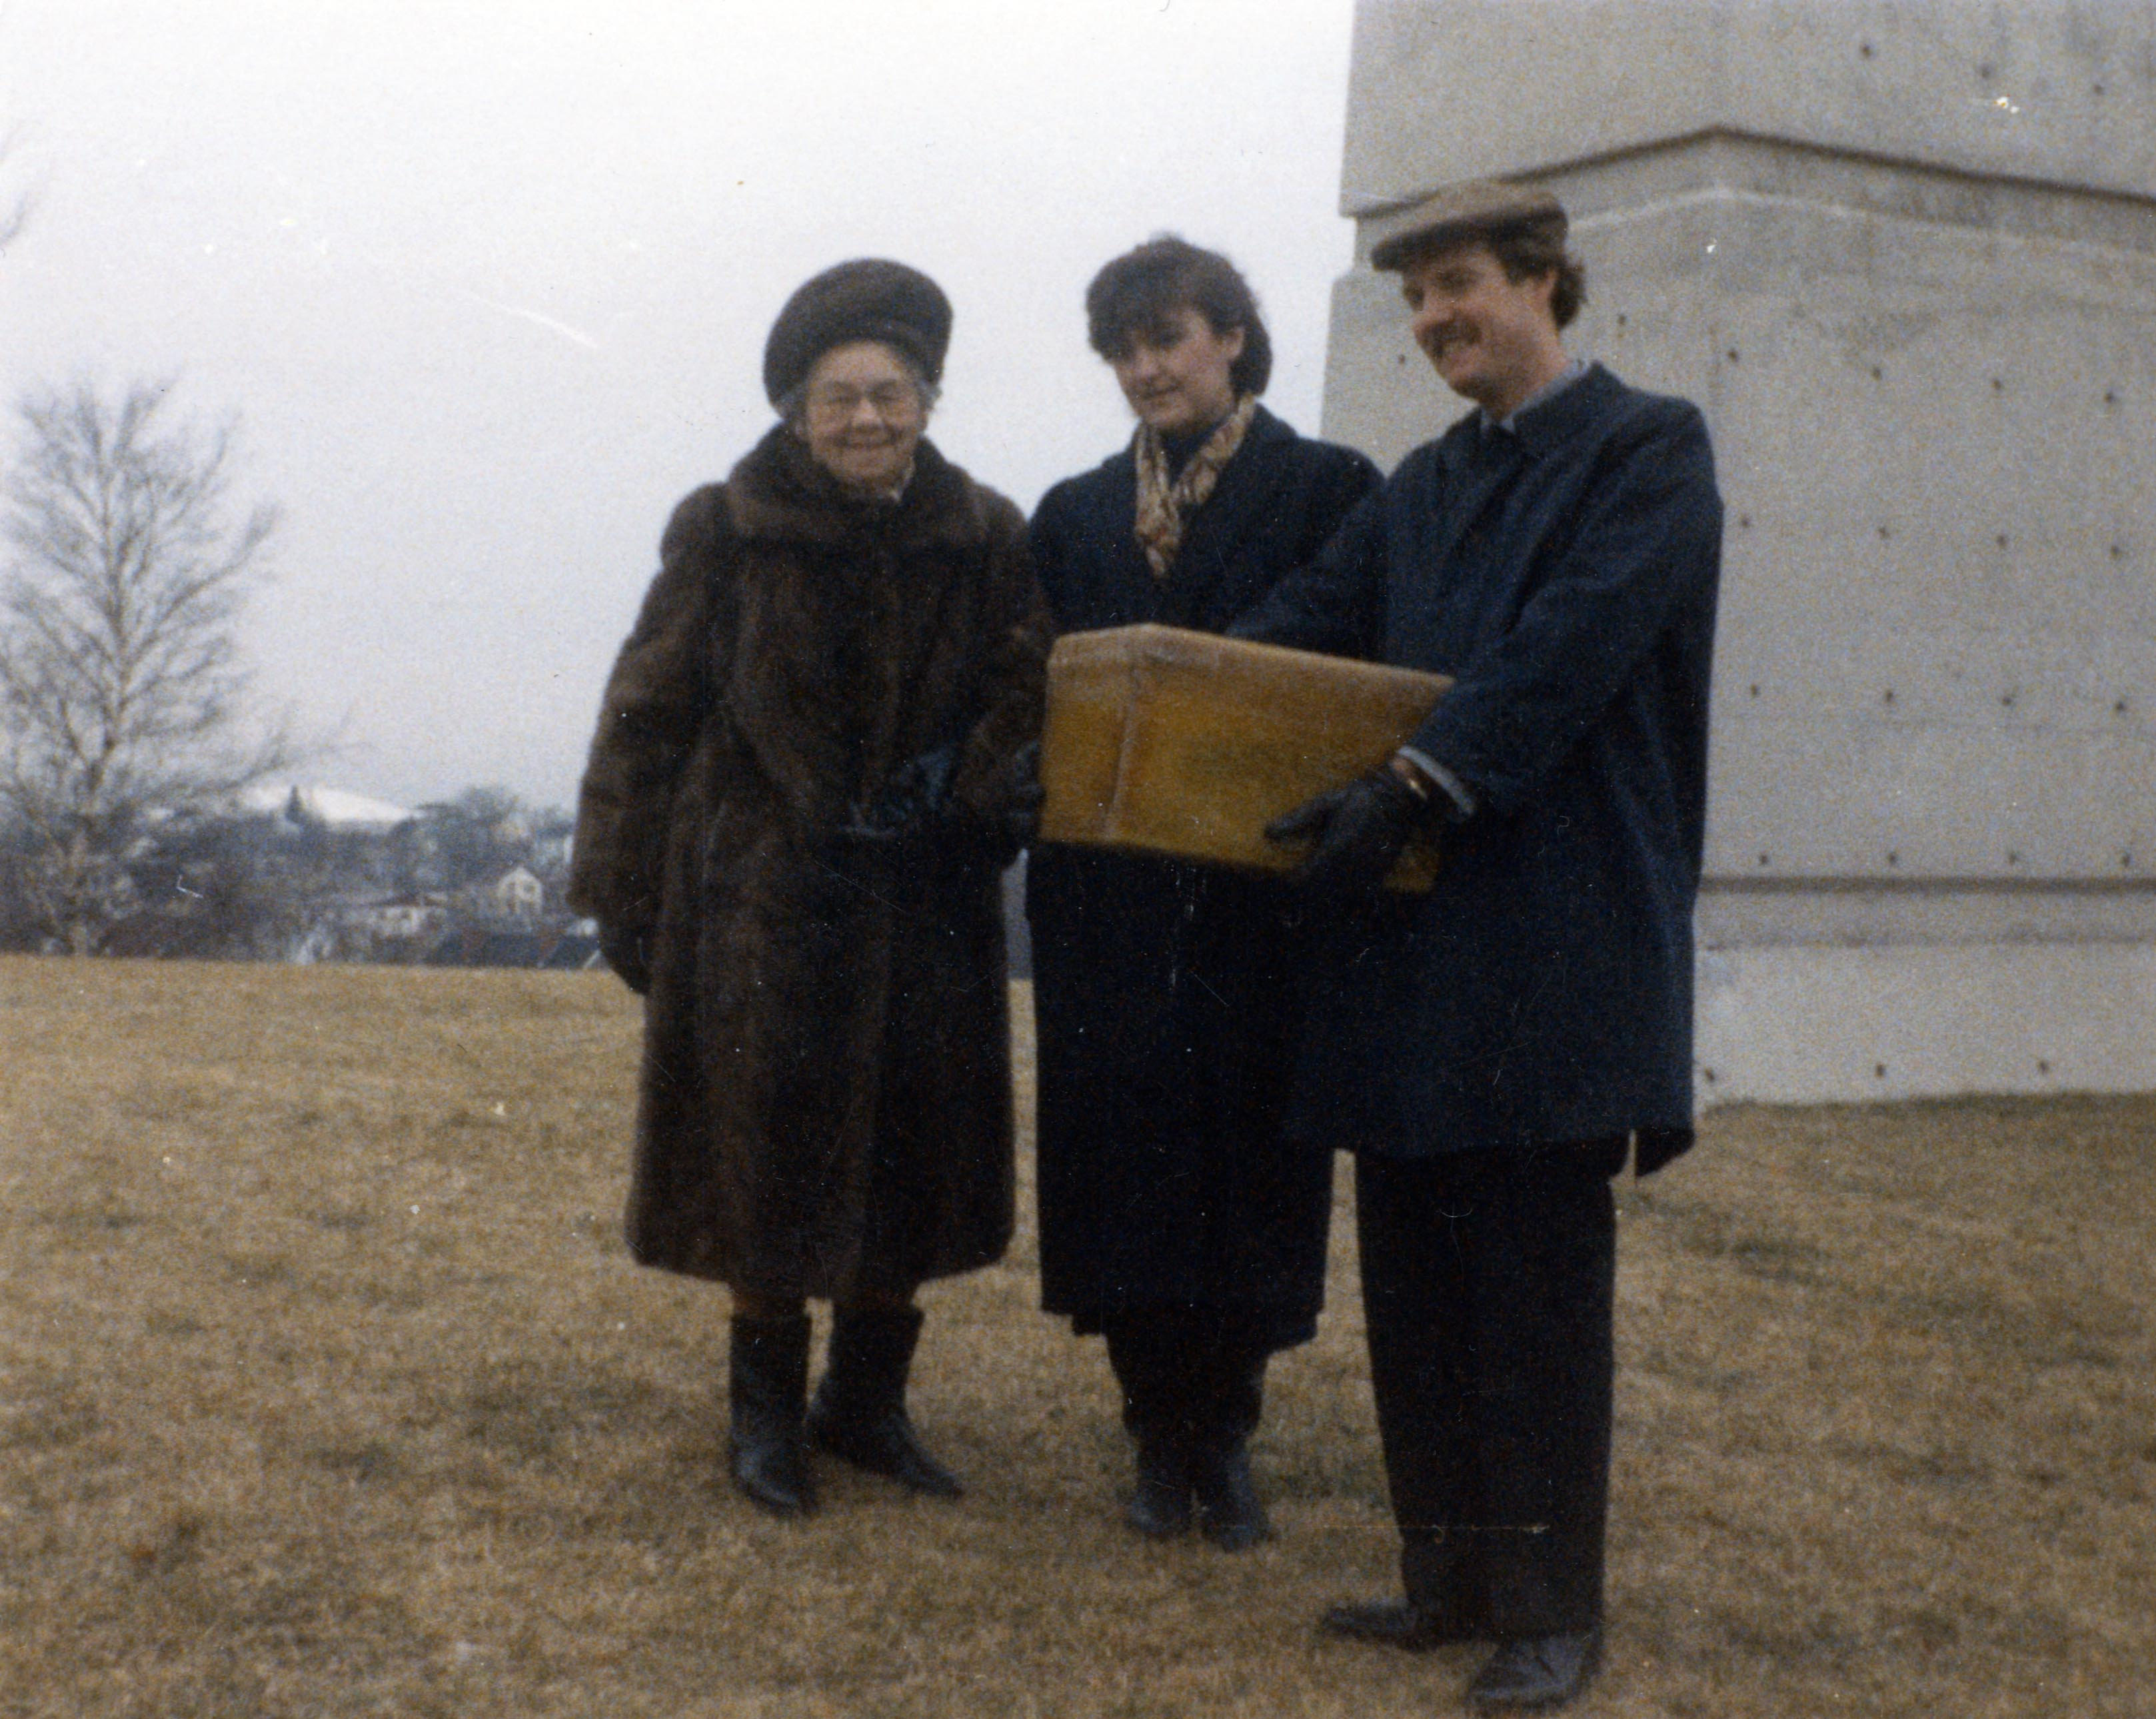 Colour photo of Explosion survivor, Millicent Upham Swindells and her grand-daughter Anne Louise Ihasz pose with Committee member Alec McLeave just before they place the time capsule, in front of the Memorial Bell Tower.